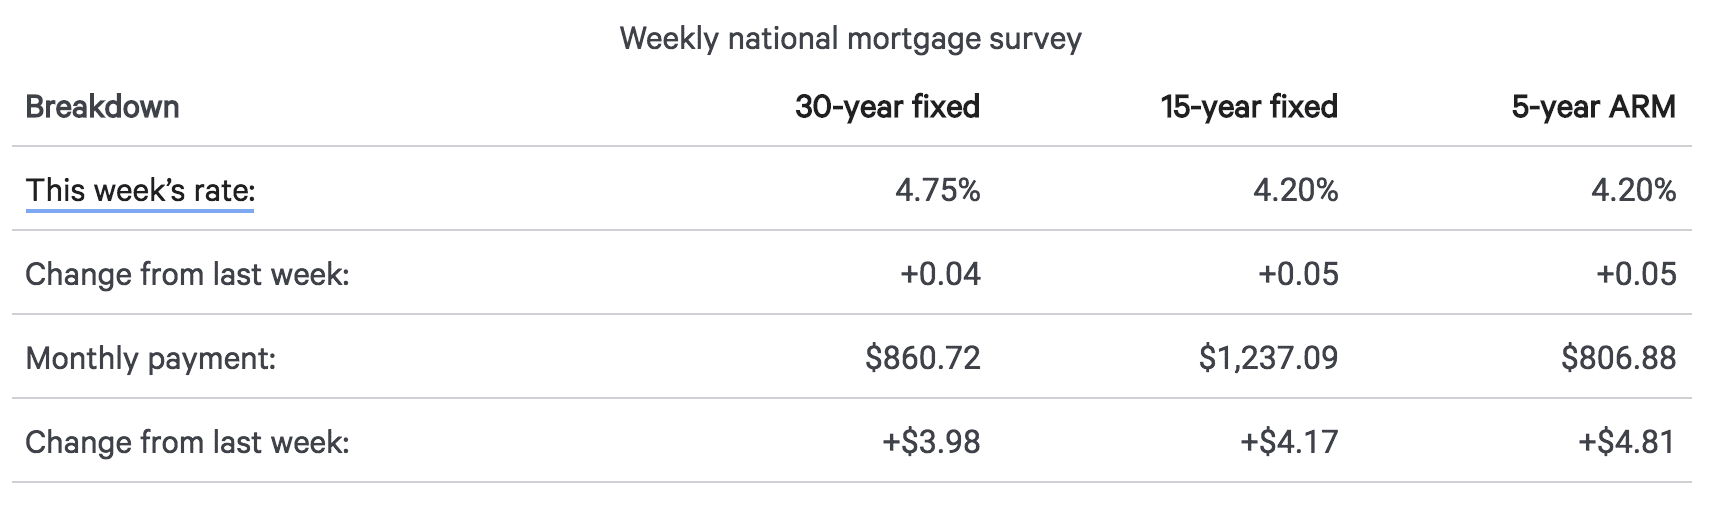 MORTGAGE RATES - AUGUST 3RD